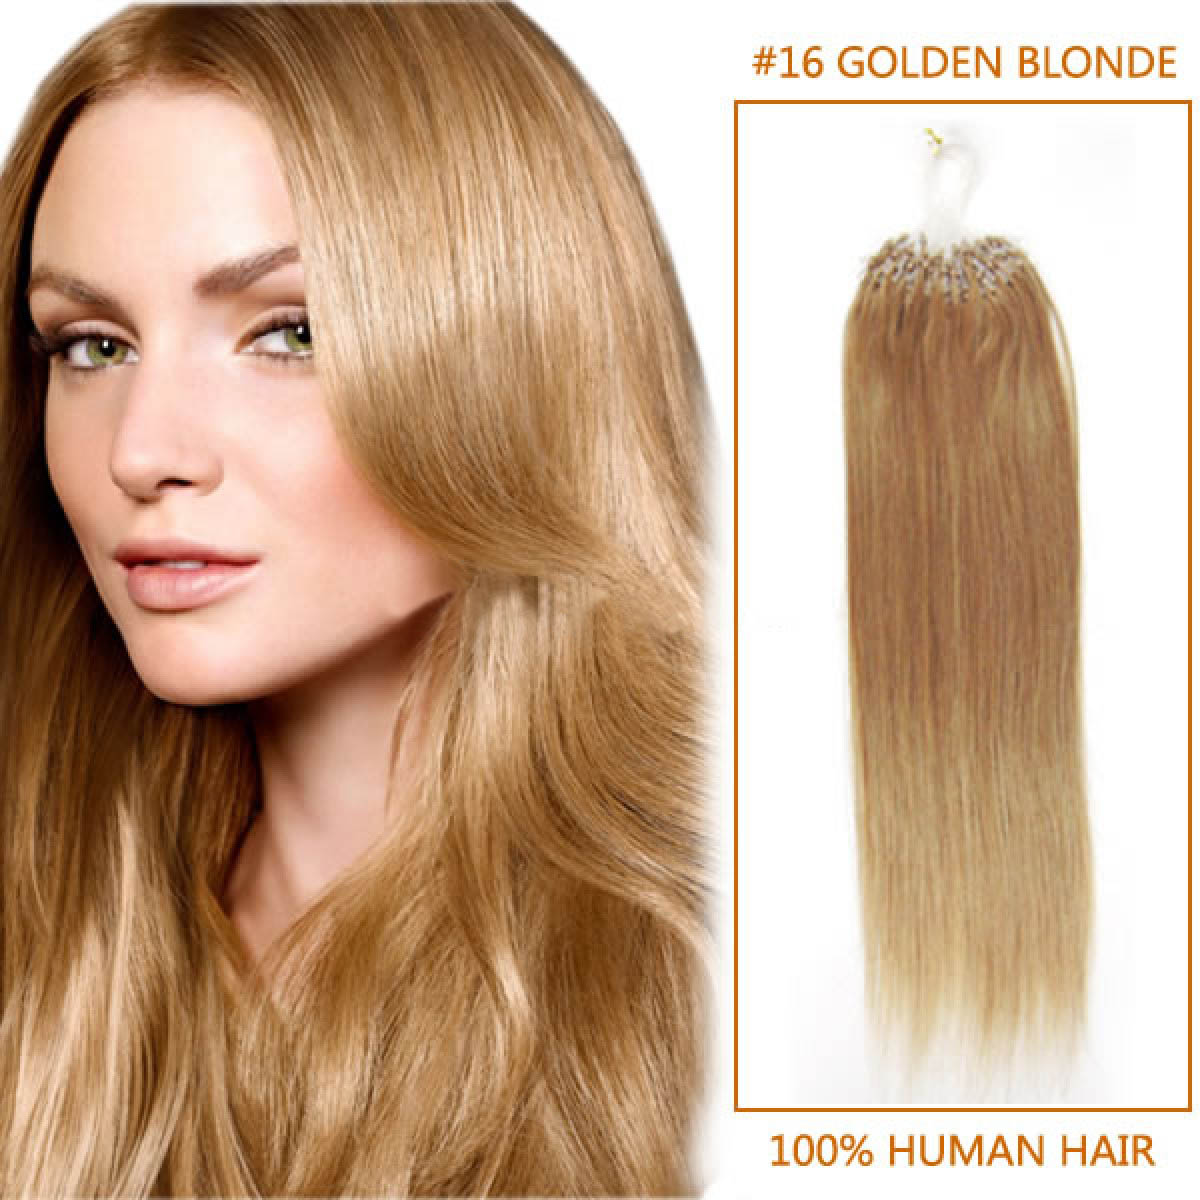 22 inch micro bead hair extensions choice image hair extension inch 16 golden blonde micro loop human hair extensions 100s 22 inch 16 golden blonde micro pmusecretfo Image collections